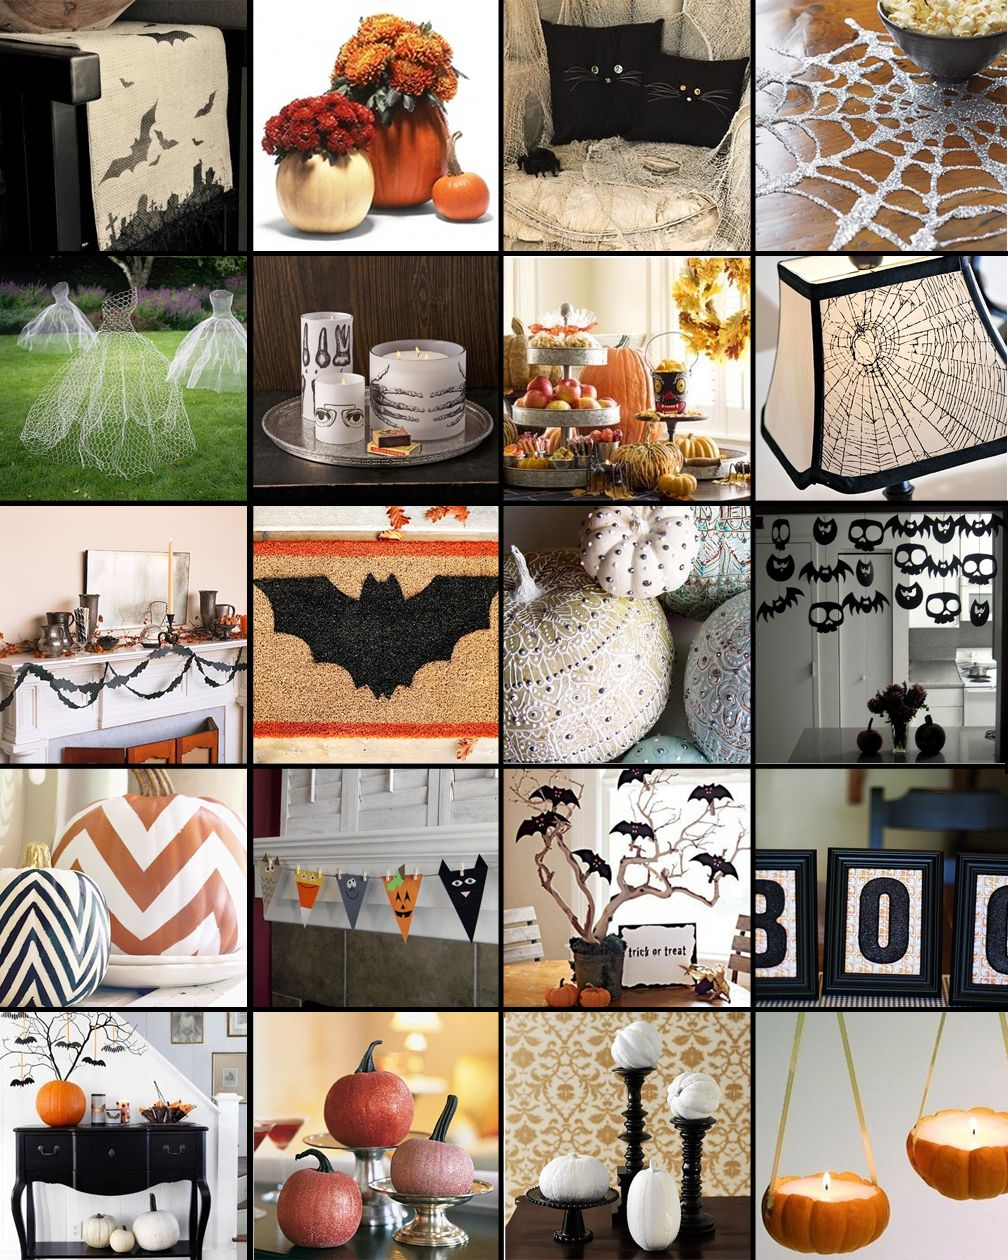 pinterest wednesday 20 diy decorations for halloween - Simple Homemade Halloween Decorations